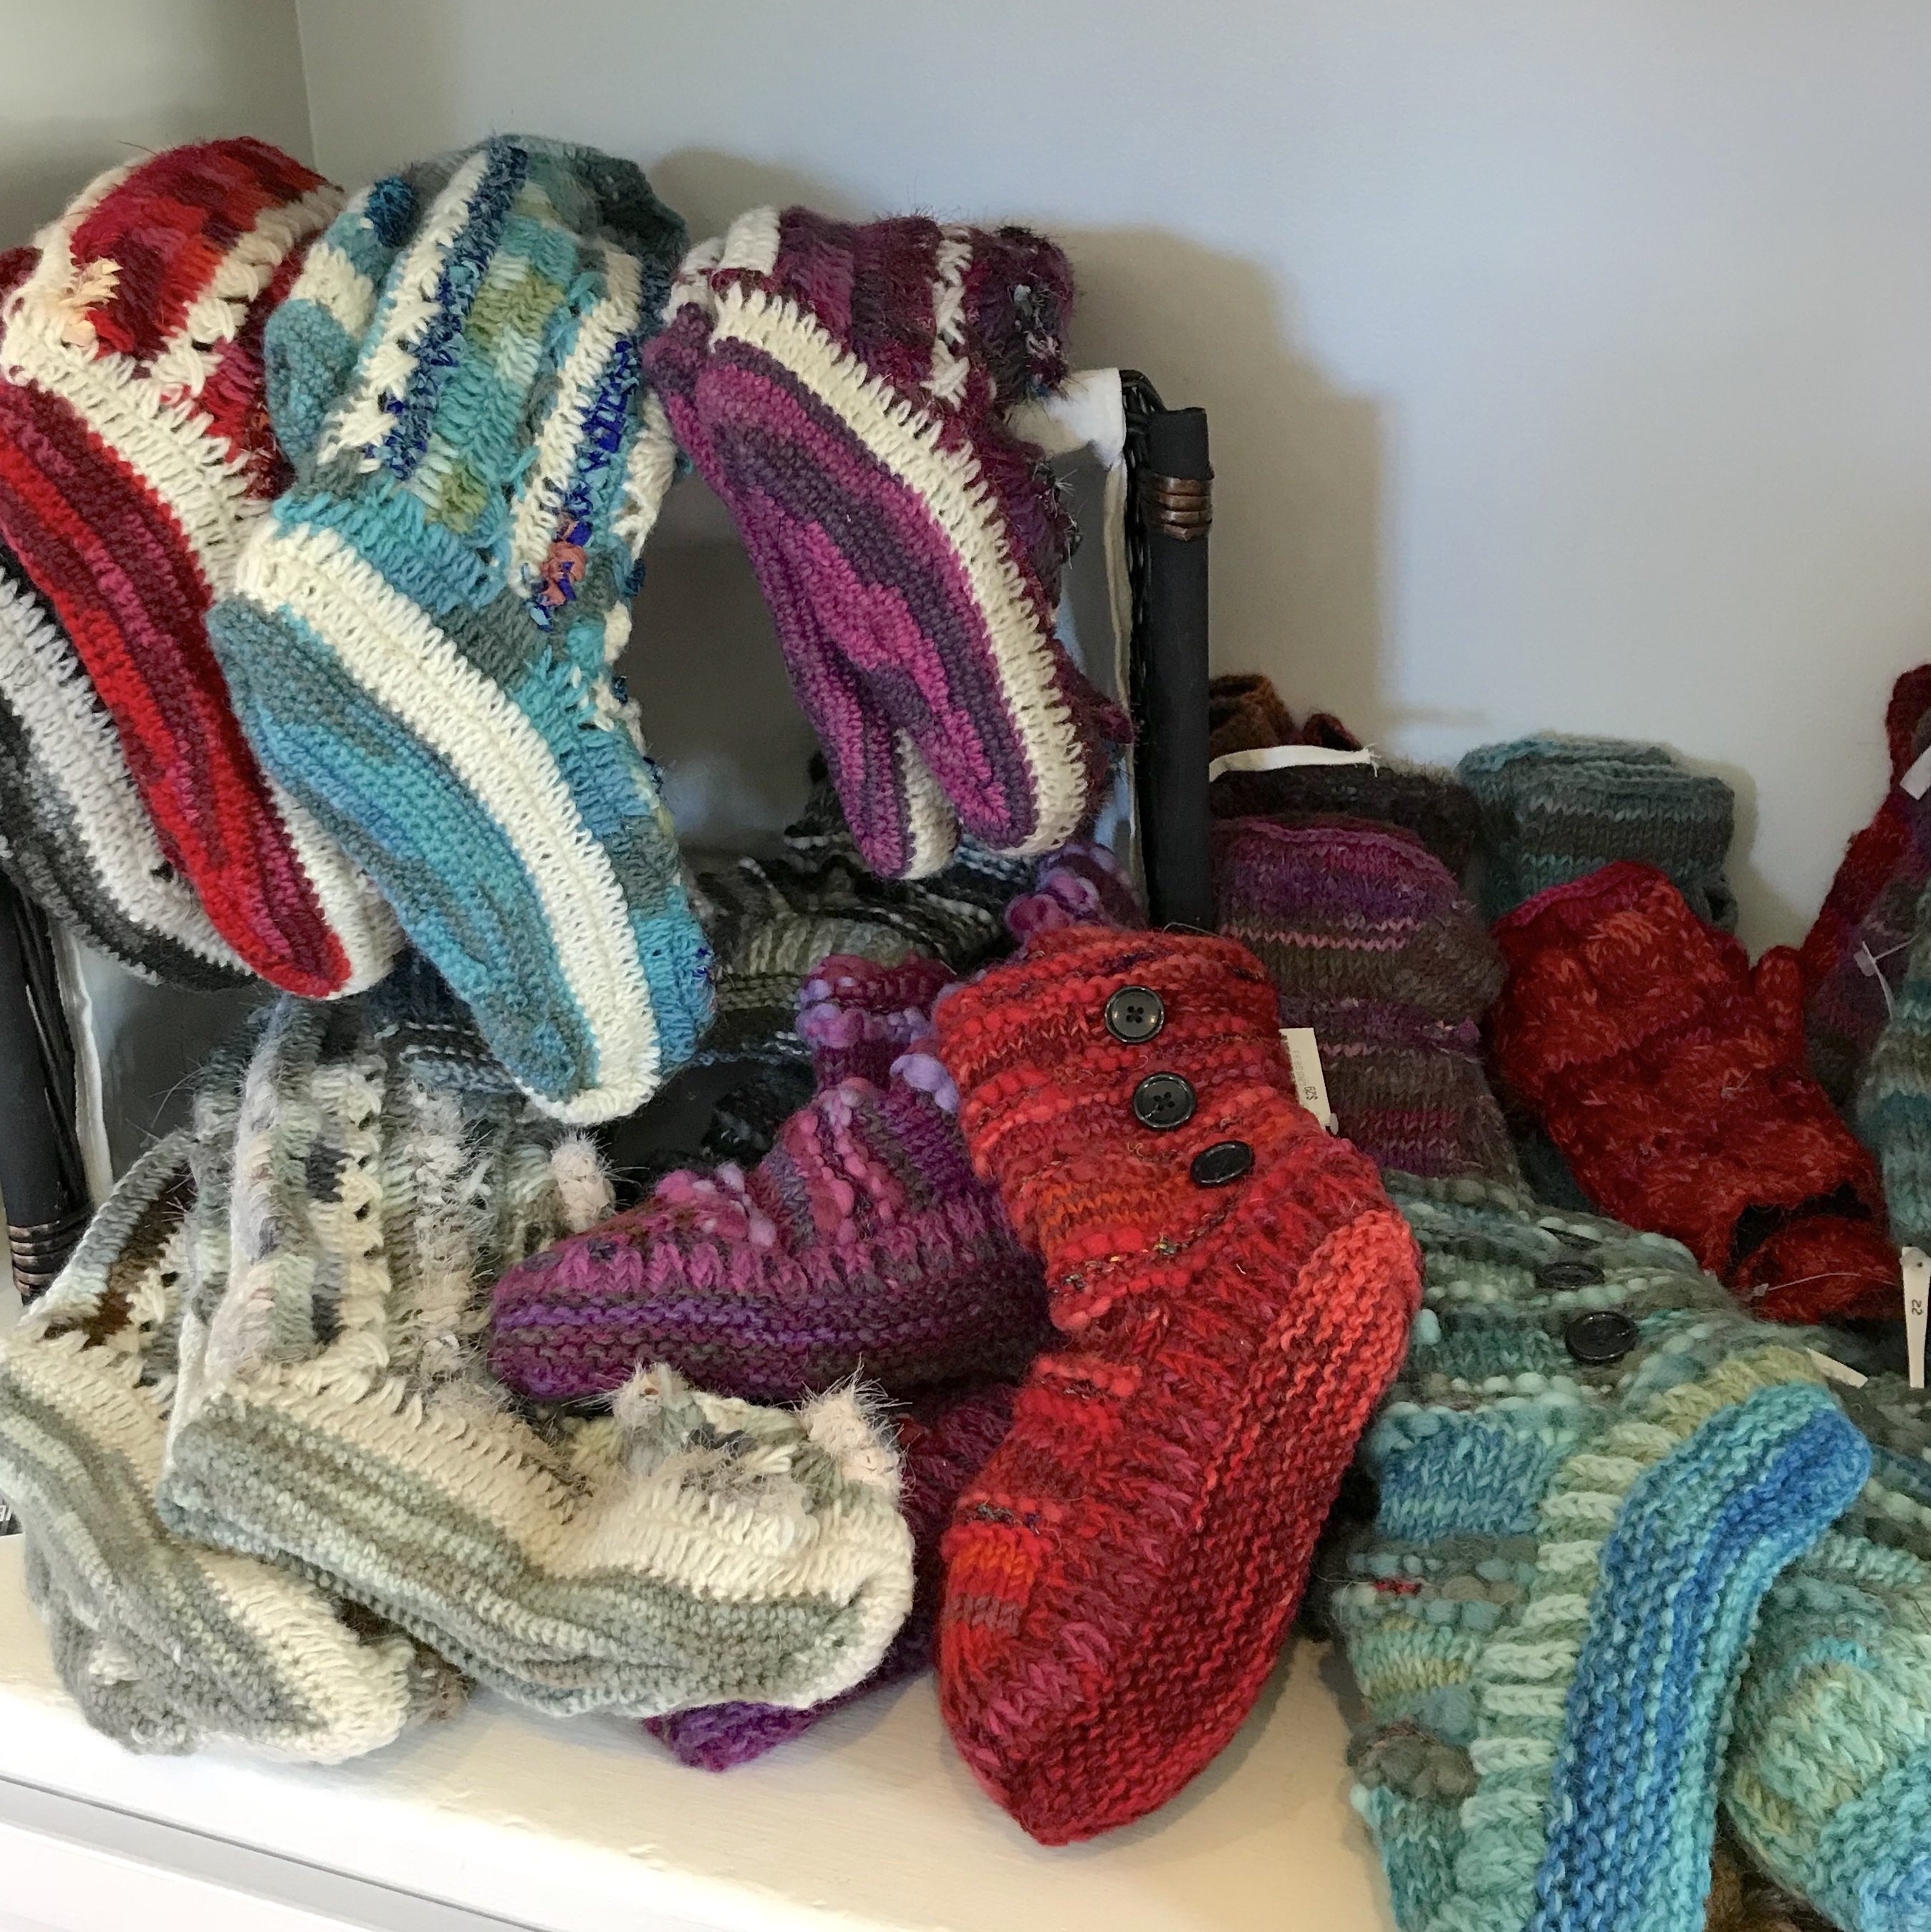 fleece lined wool slippers, gloves and hats will keep you warm all winter long!